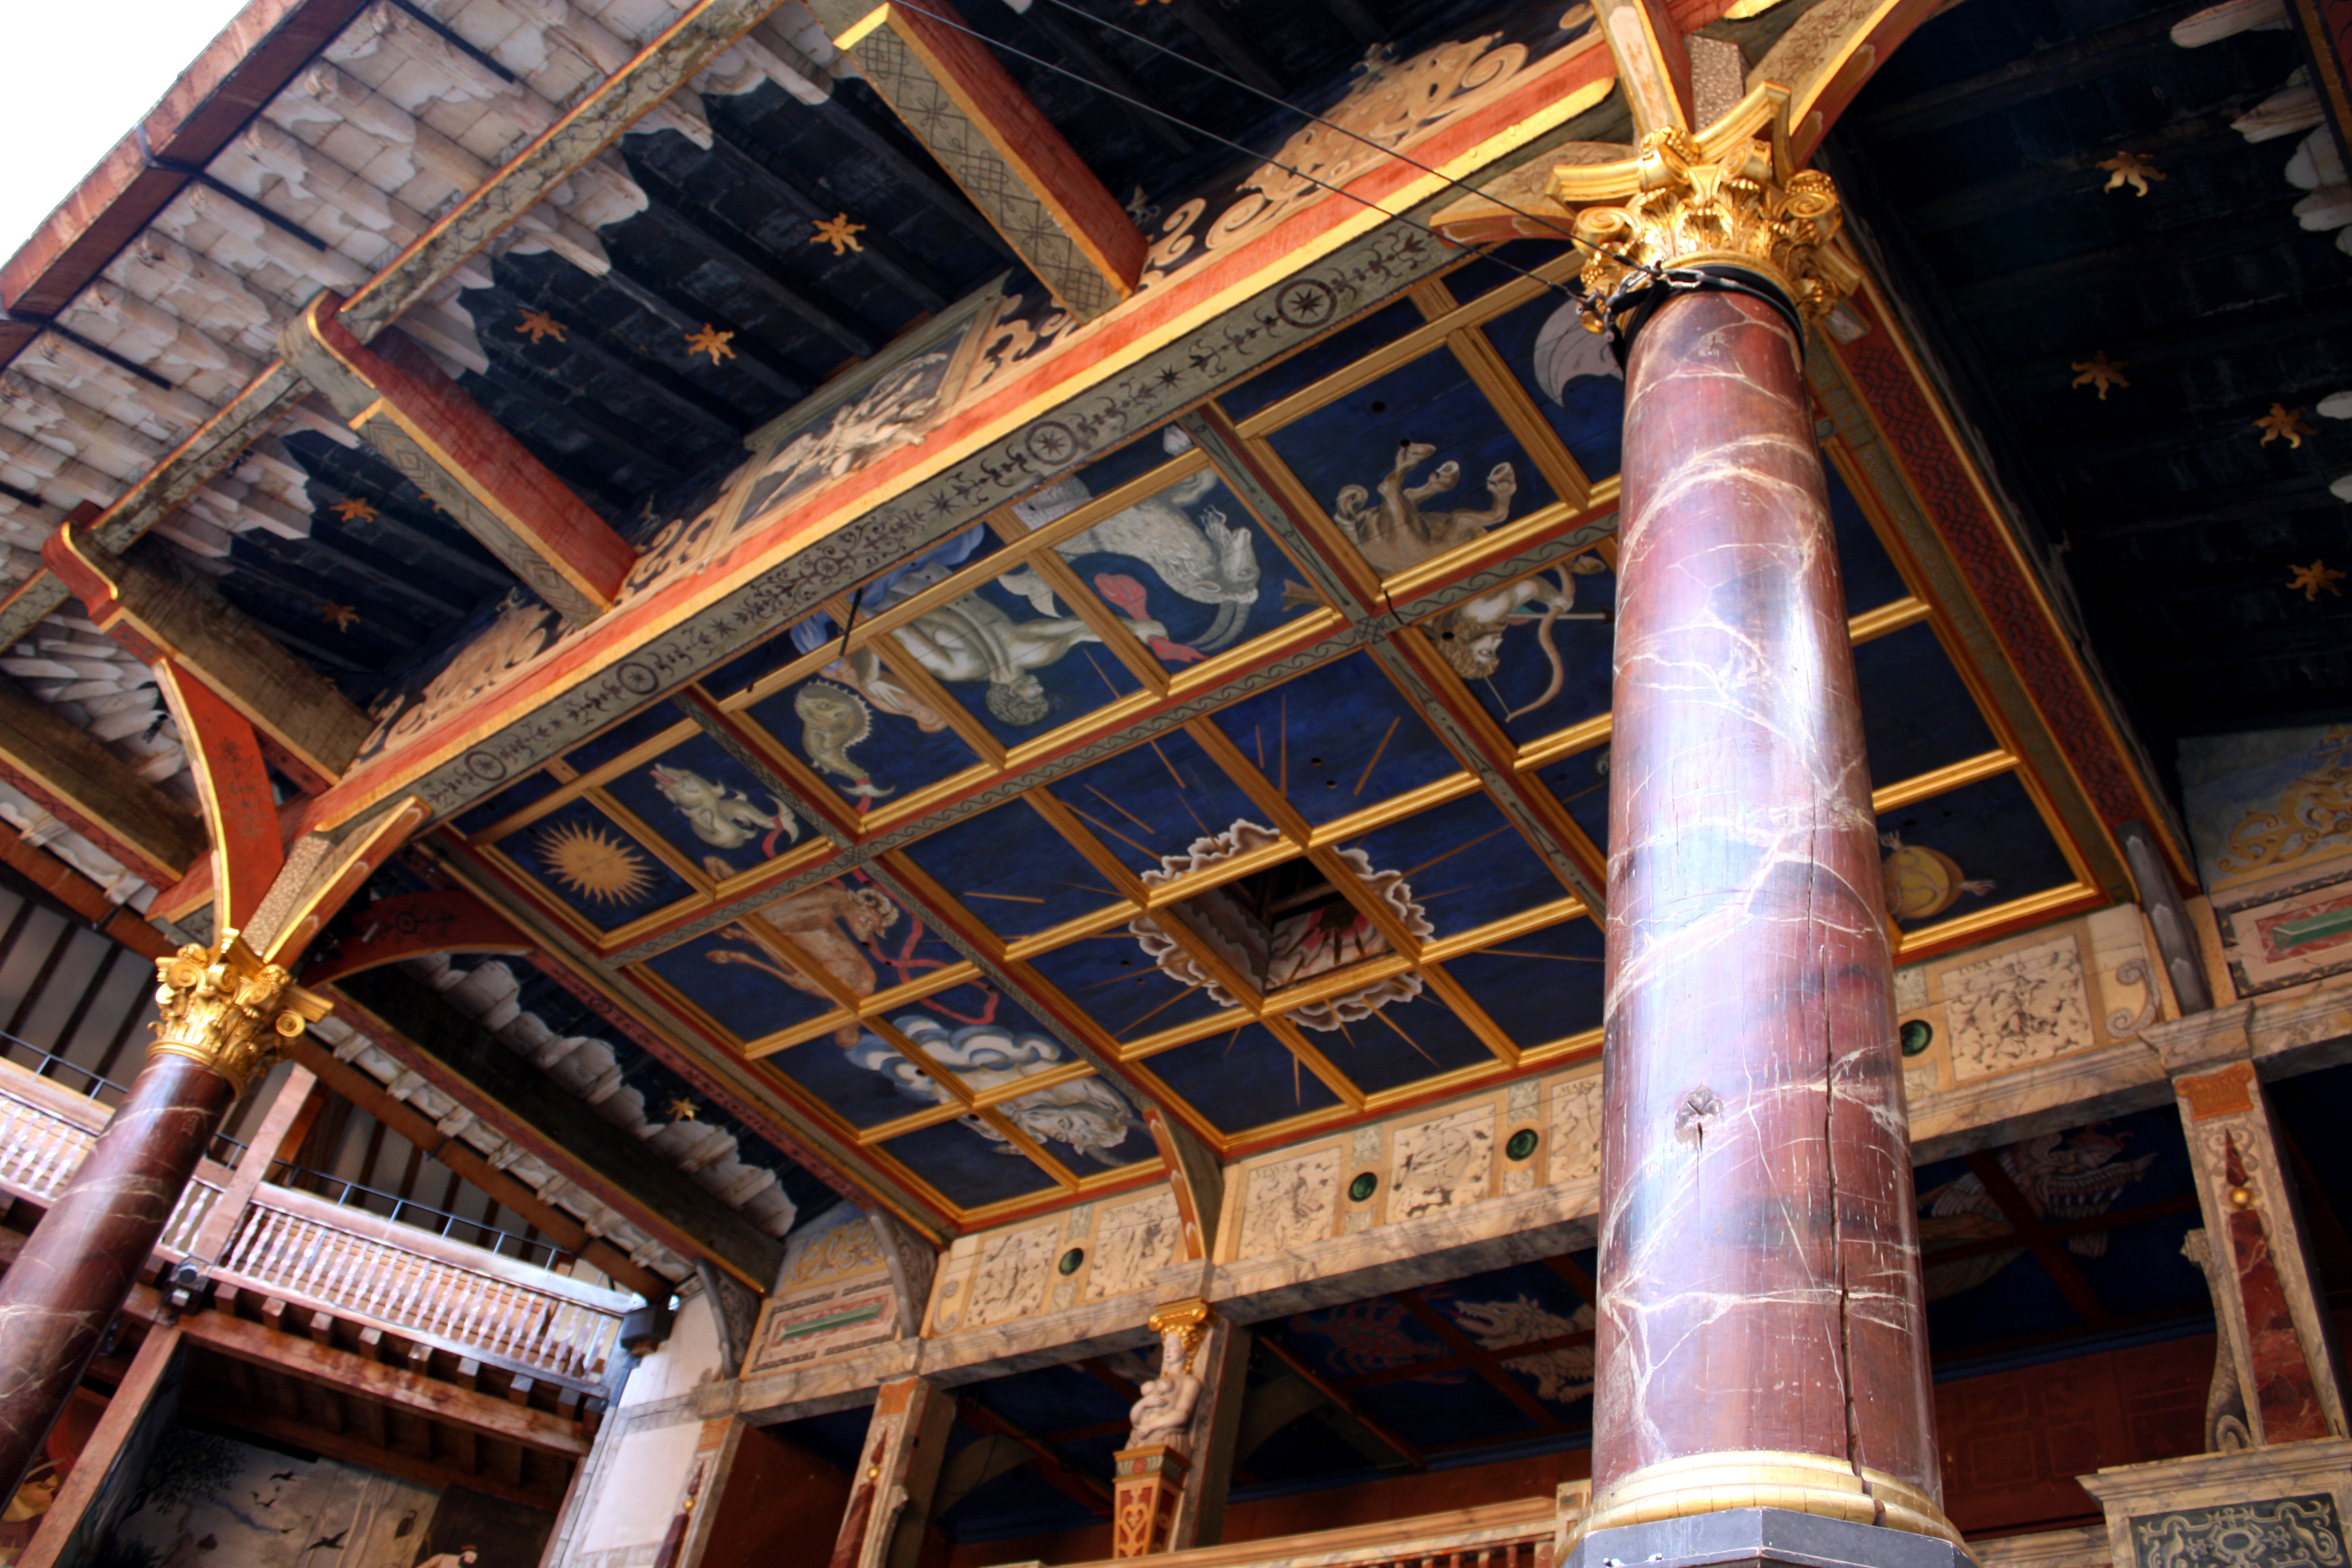 photograph of the ceiling above the stage at the Globe Theatre